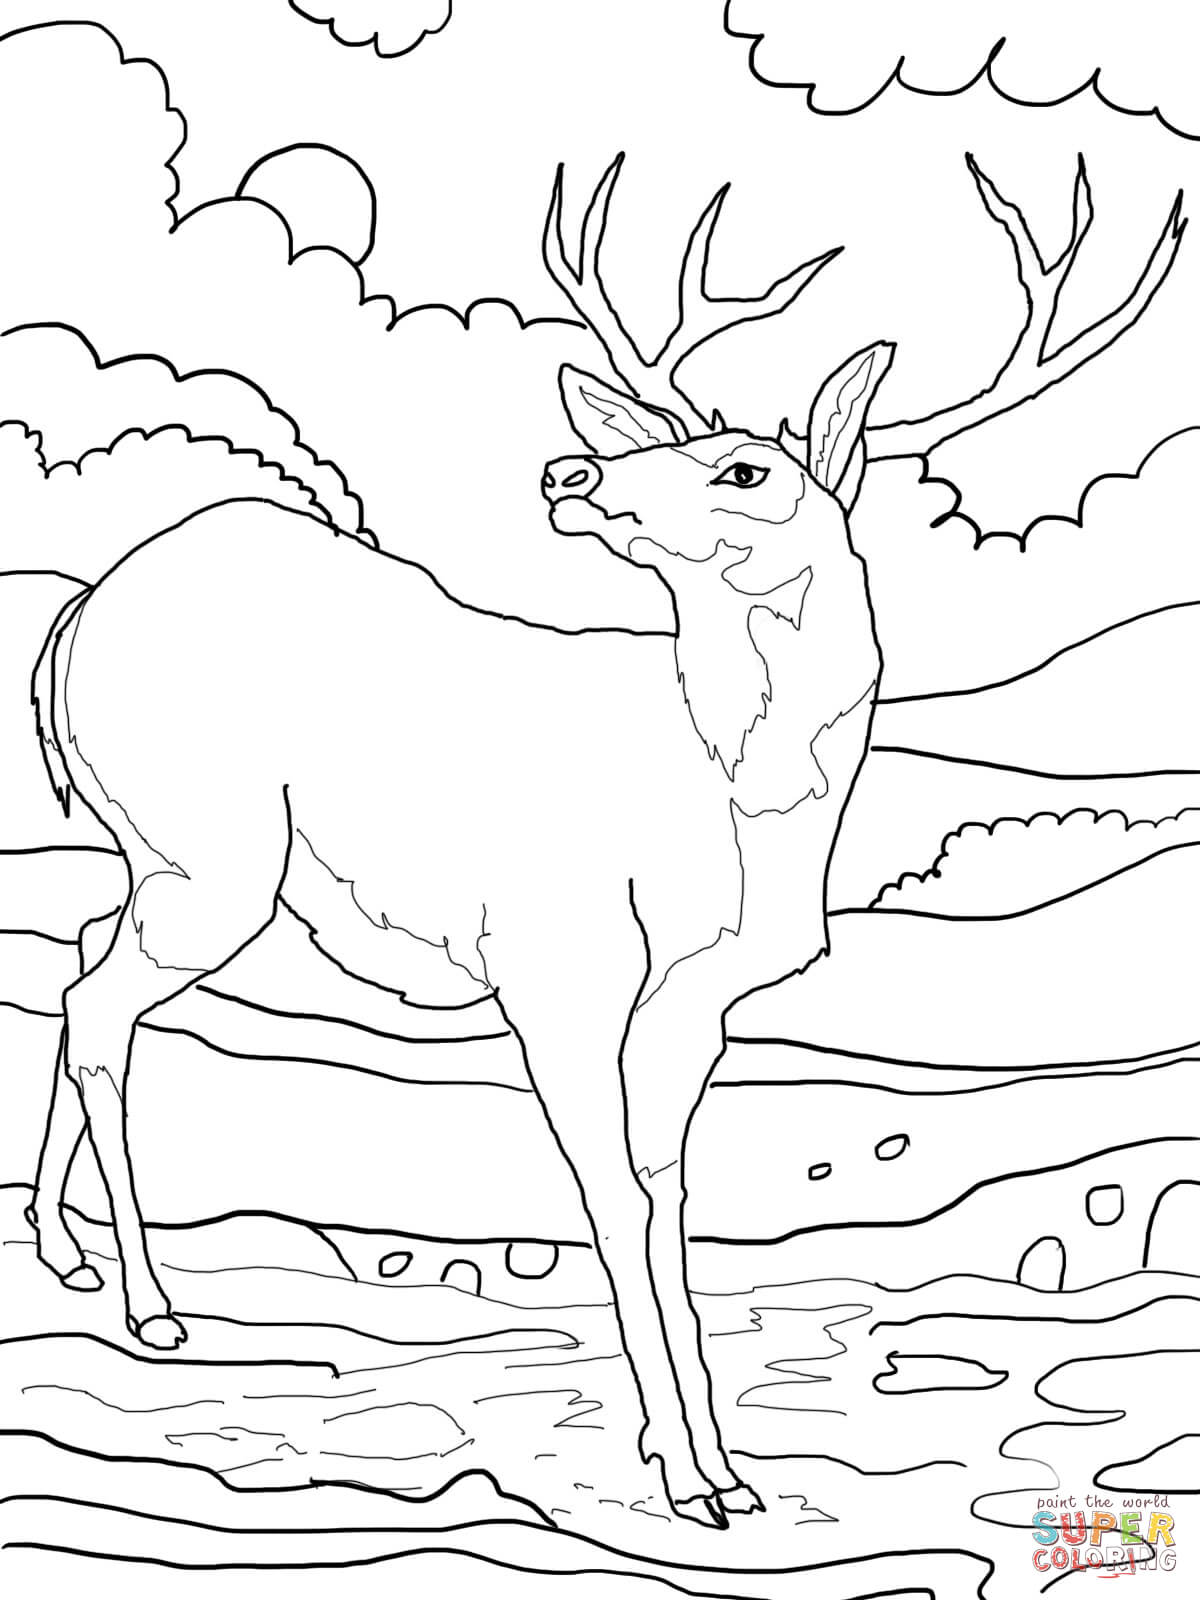 White Tail Deer Drawing at GetDrawings.com | Free for personal use ...